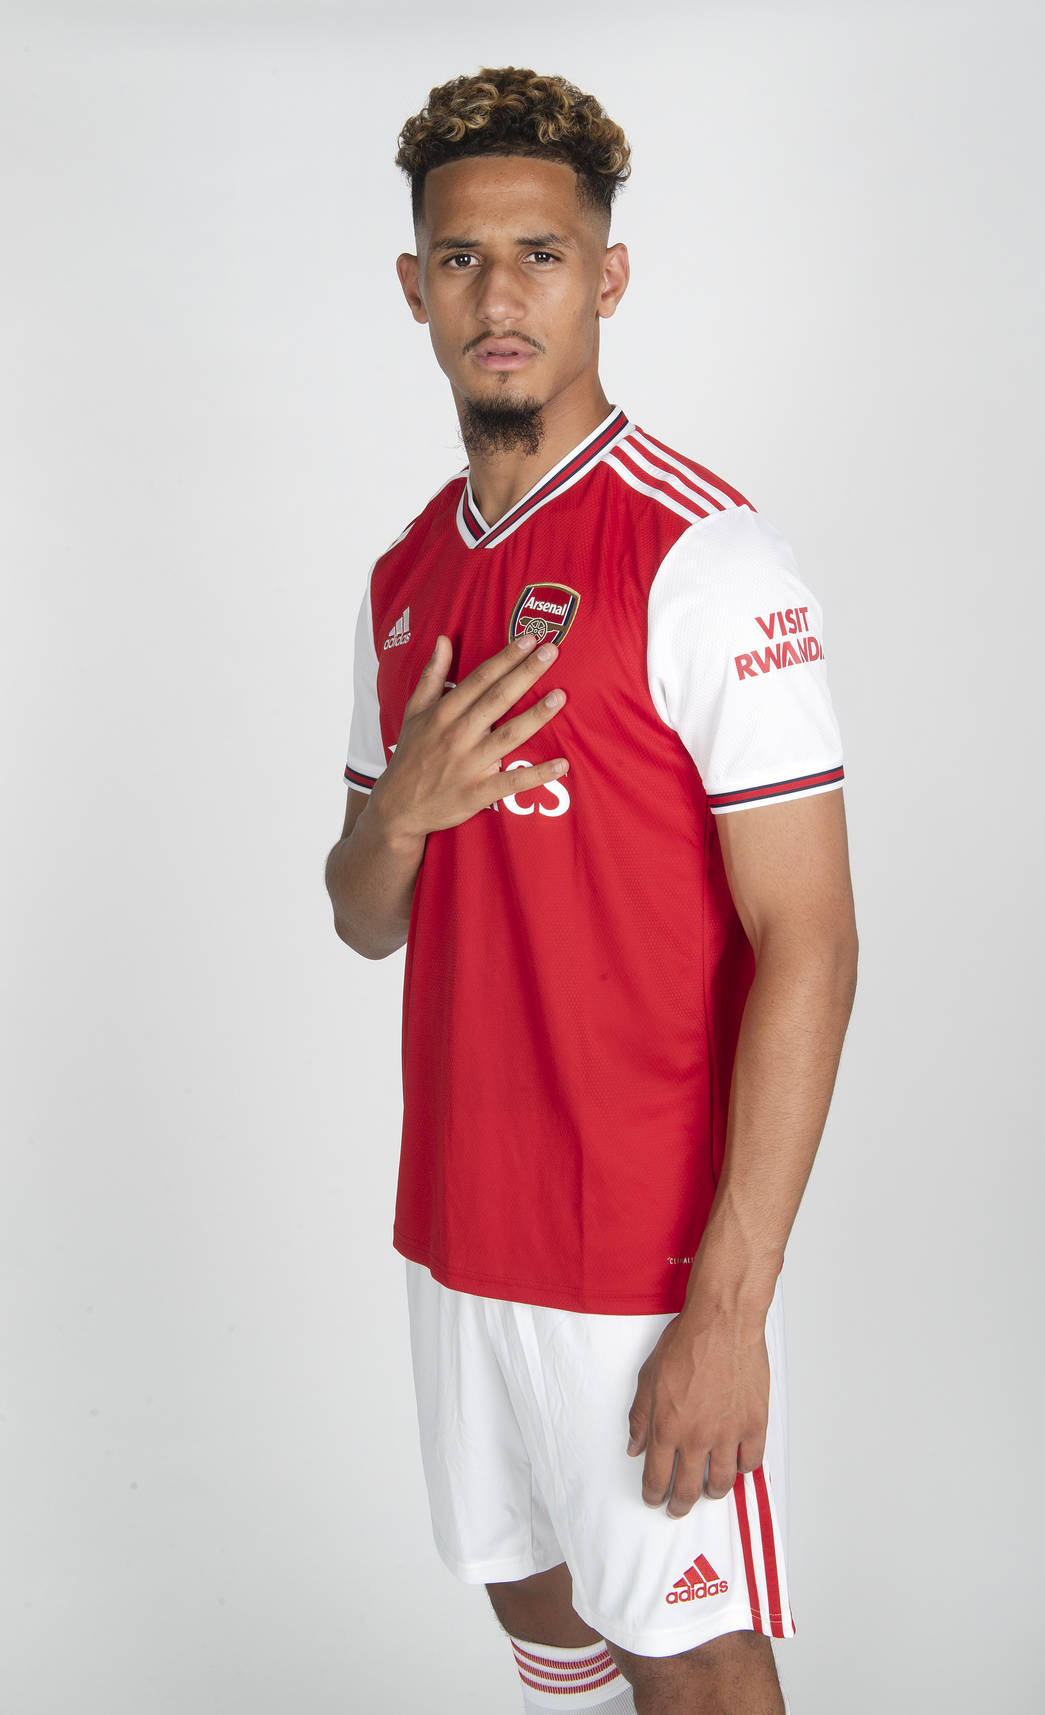 brand new 4fd4e 2ade8 📸 The first pictures of Saliba in Arsenal kit | Gallery ...